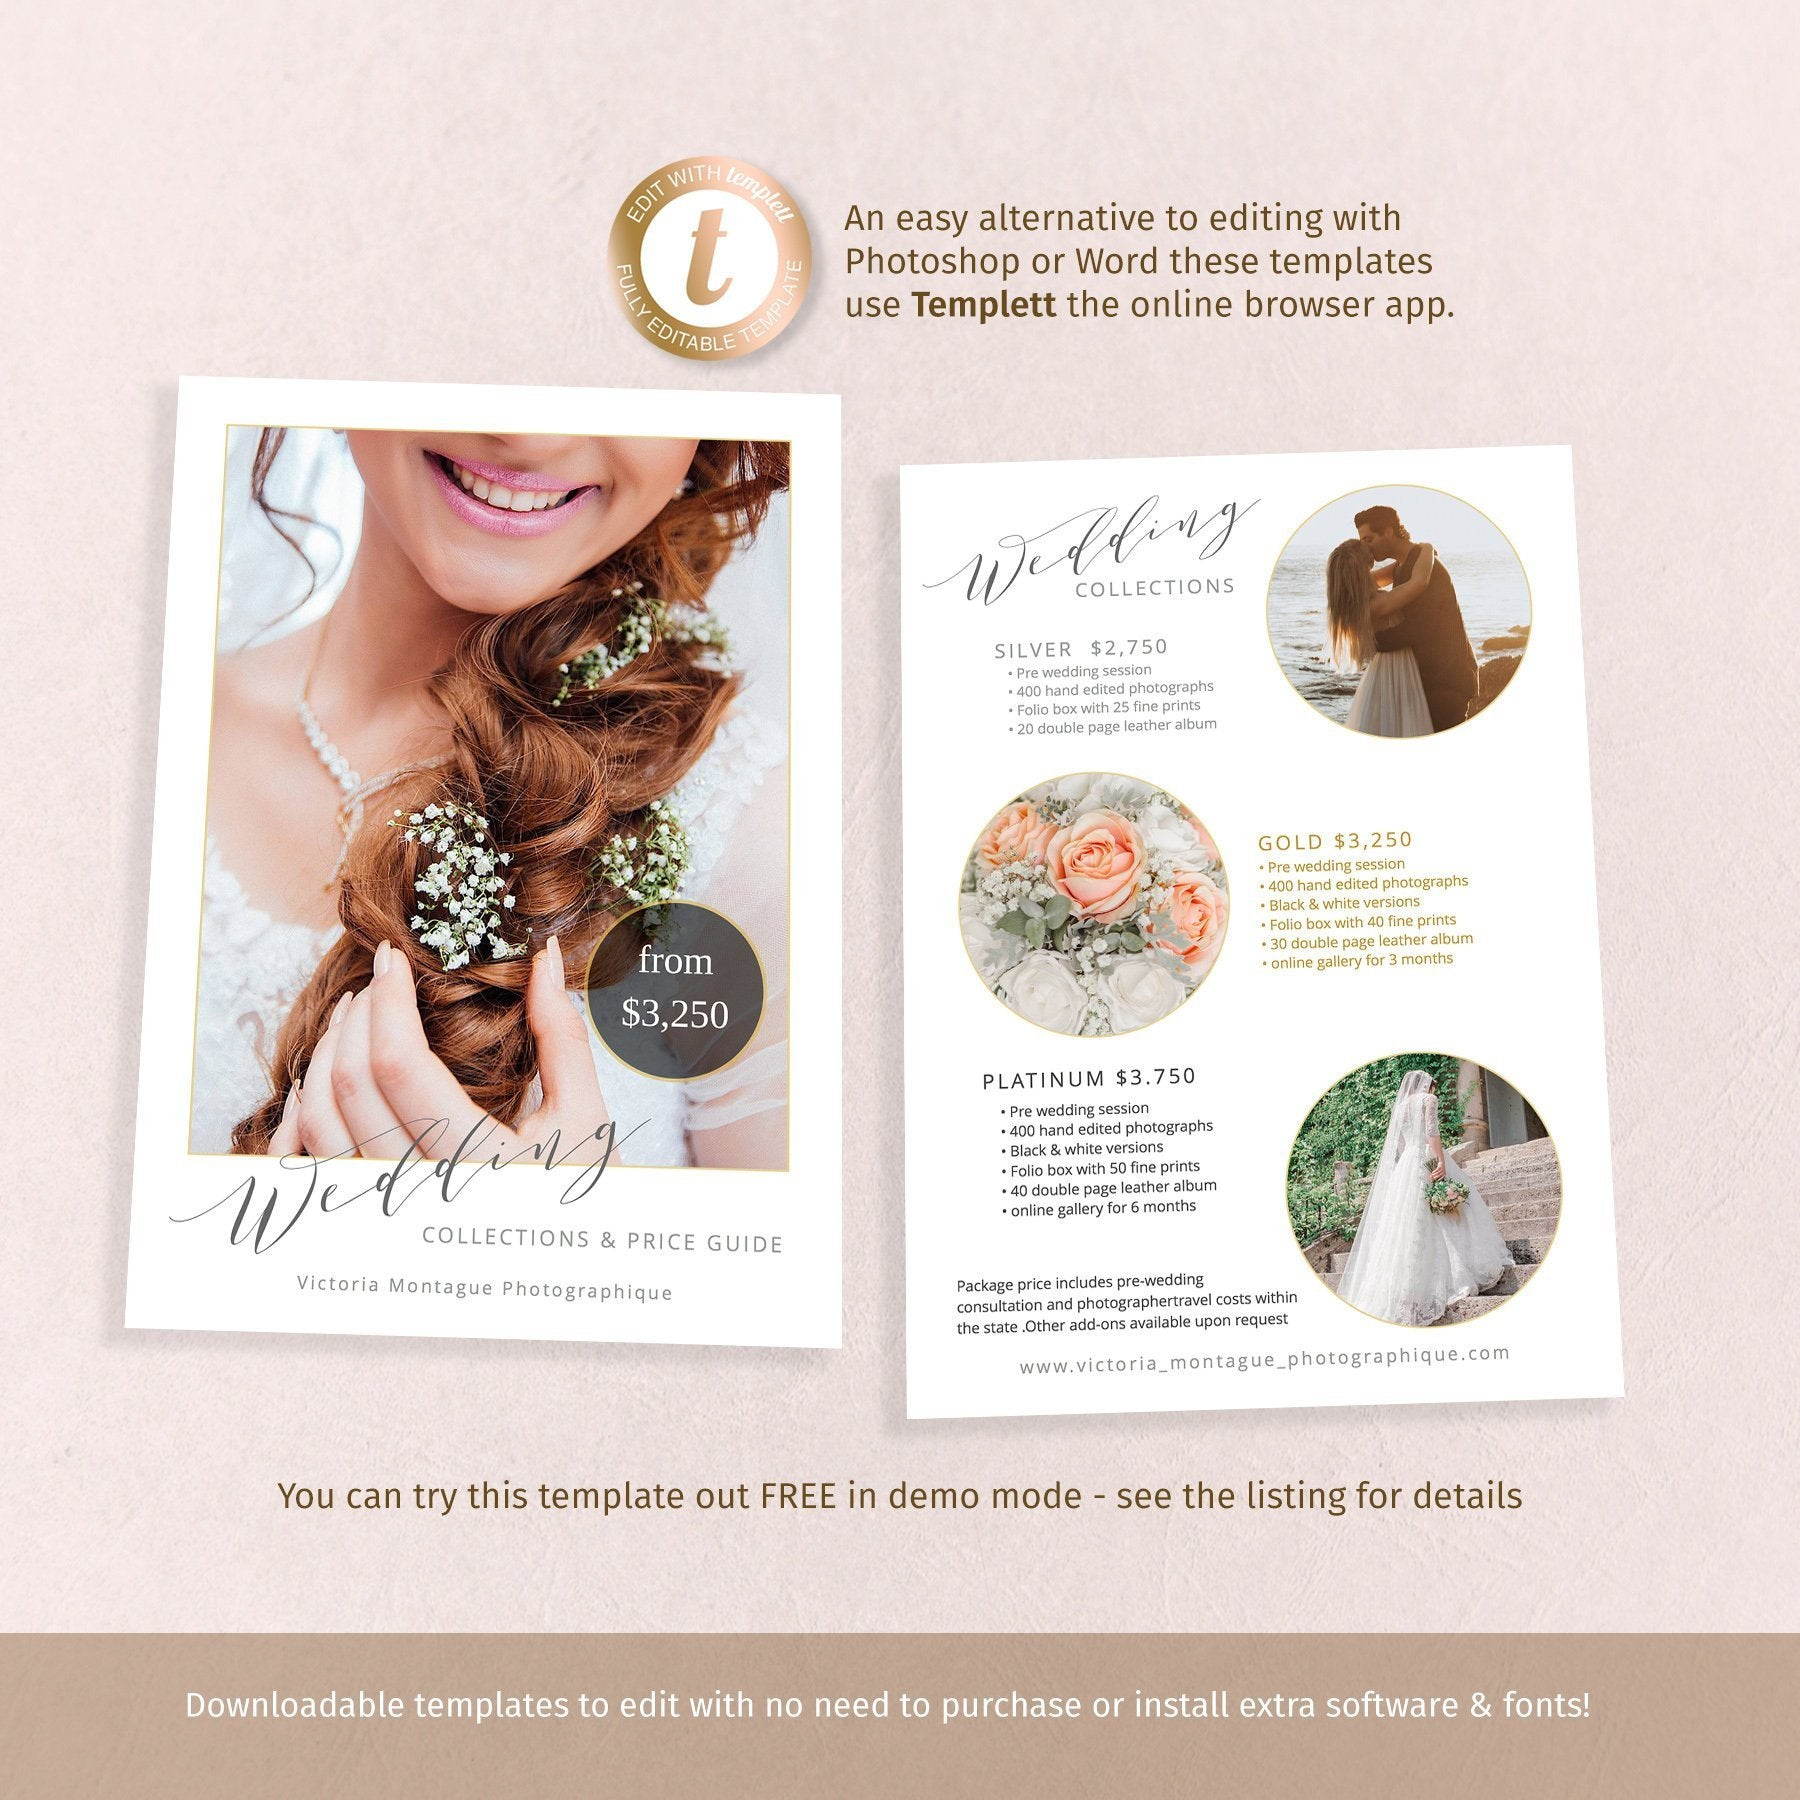 Wedding photographer price guide flyer, two sided 7x5 template, easy to customise online with Templett